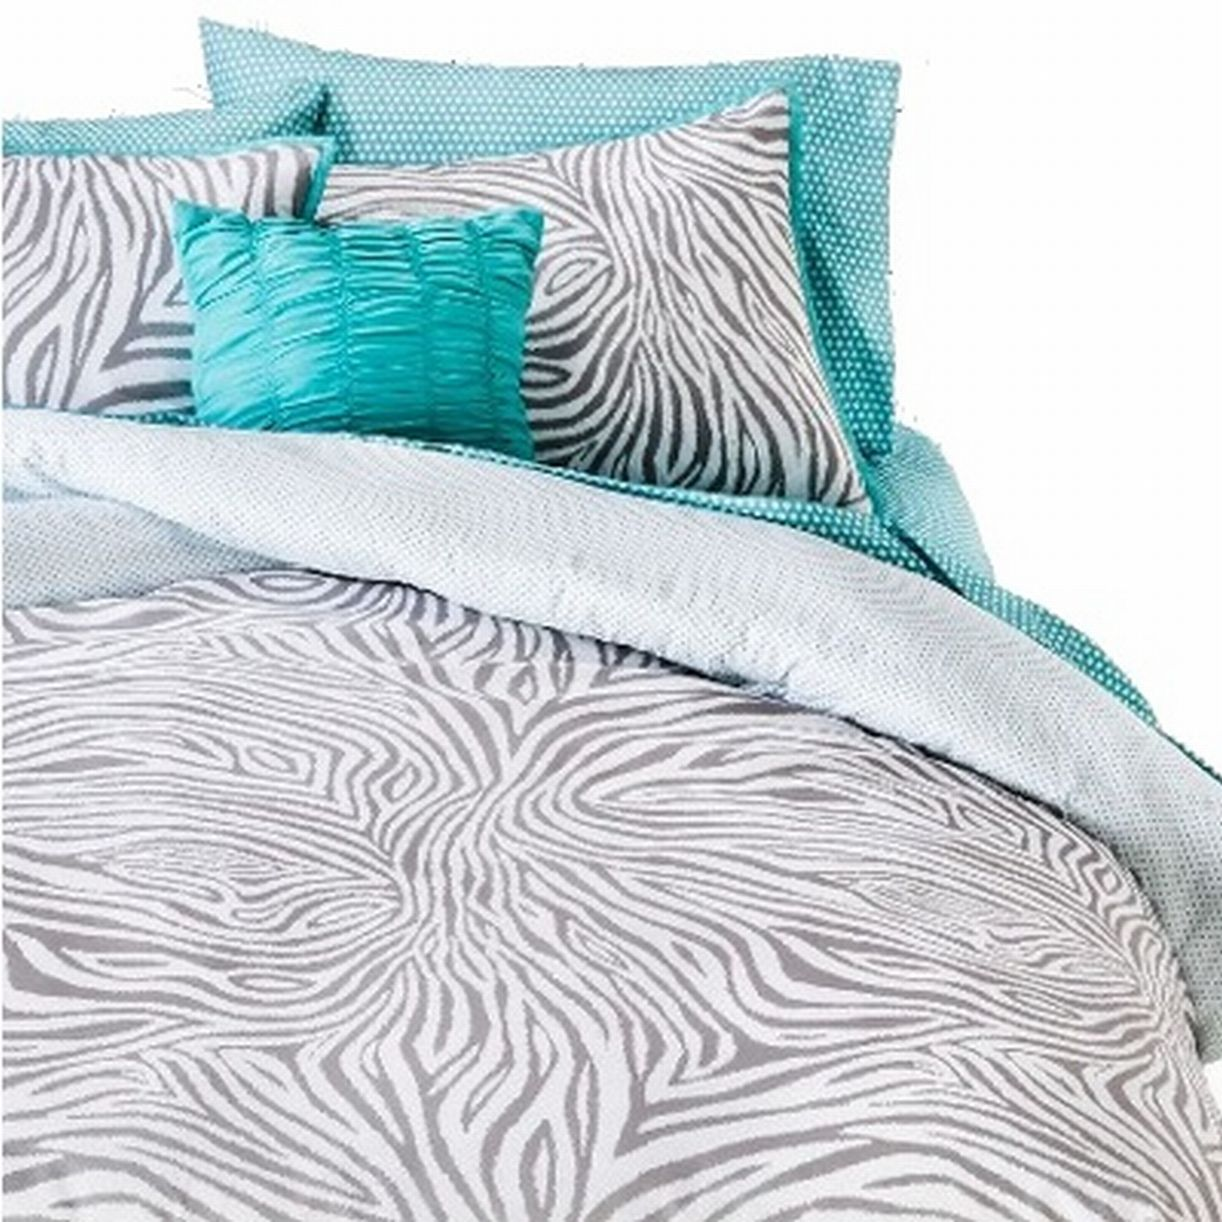 Queen Bed In Bag Gray Zebra Stripe Comforter Sheets Shams & Pillow